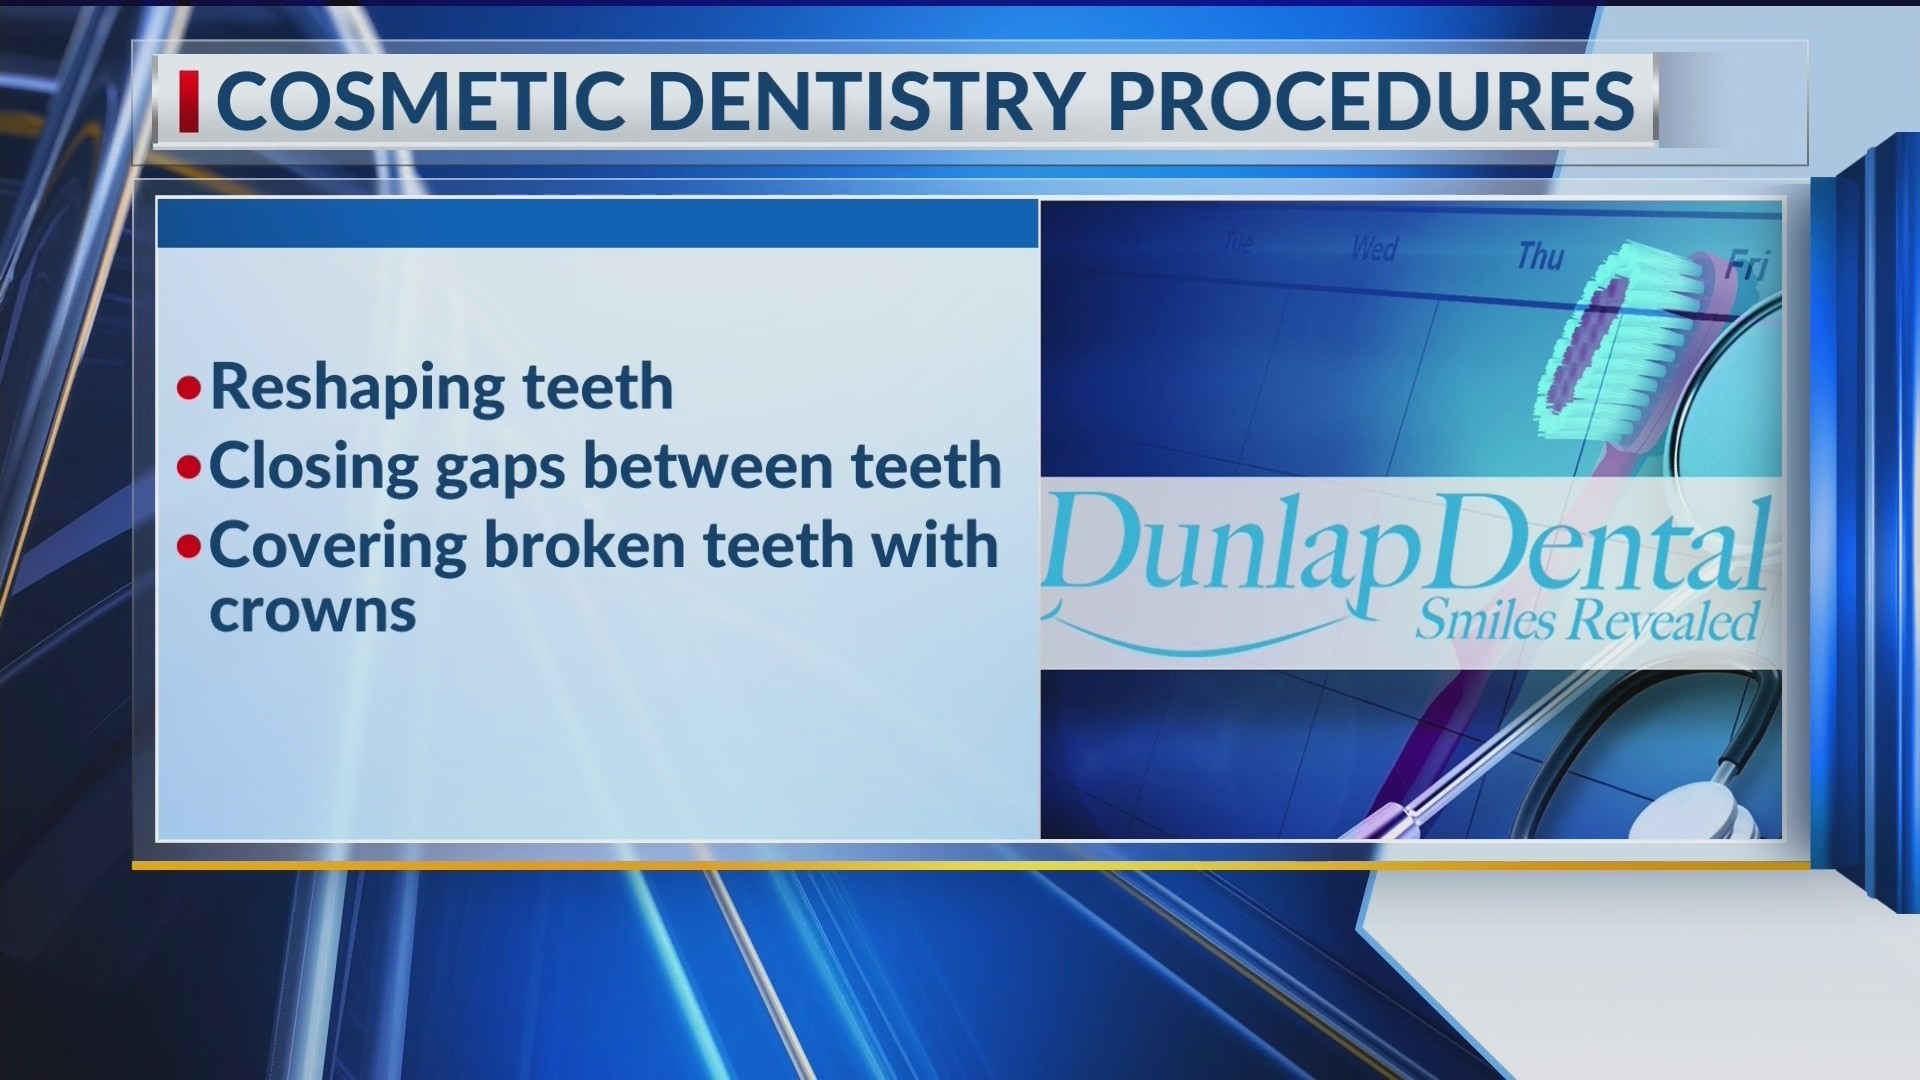 Dunlap_Dental_Cosmetic_Procedures_0_20190110205224